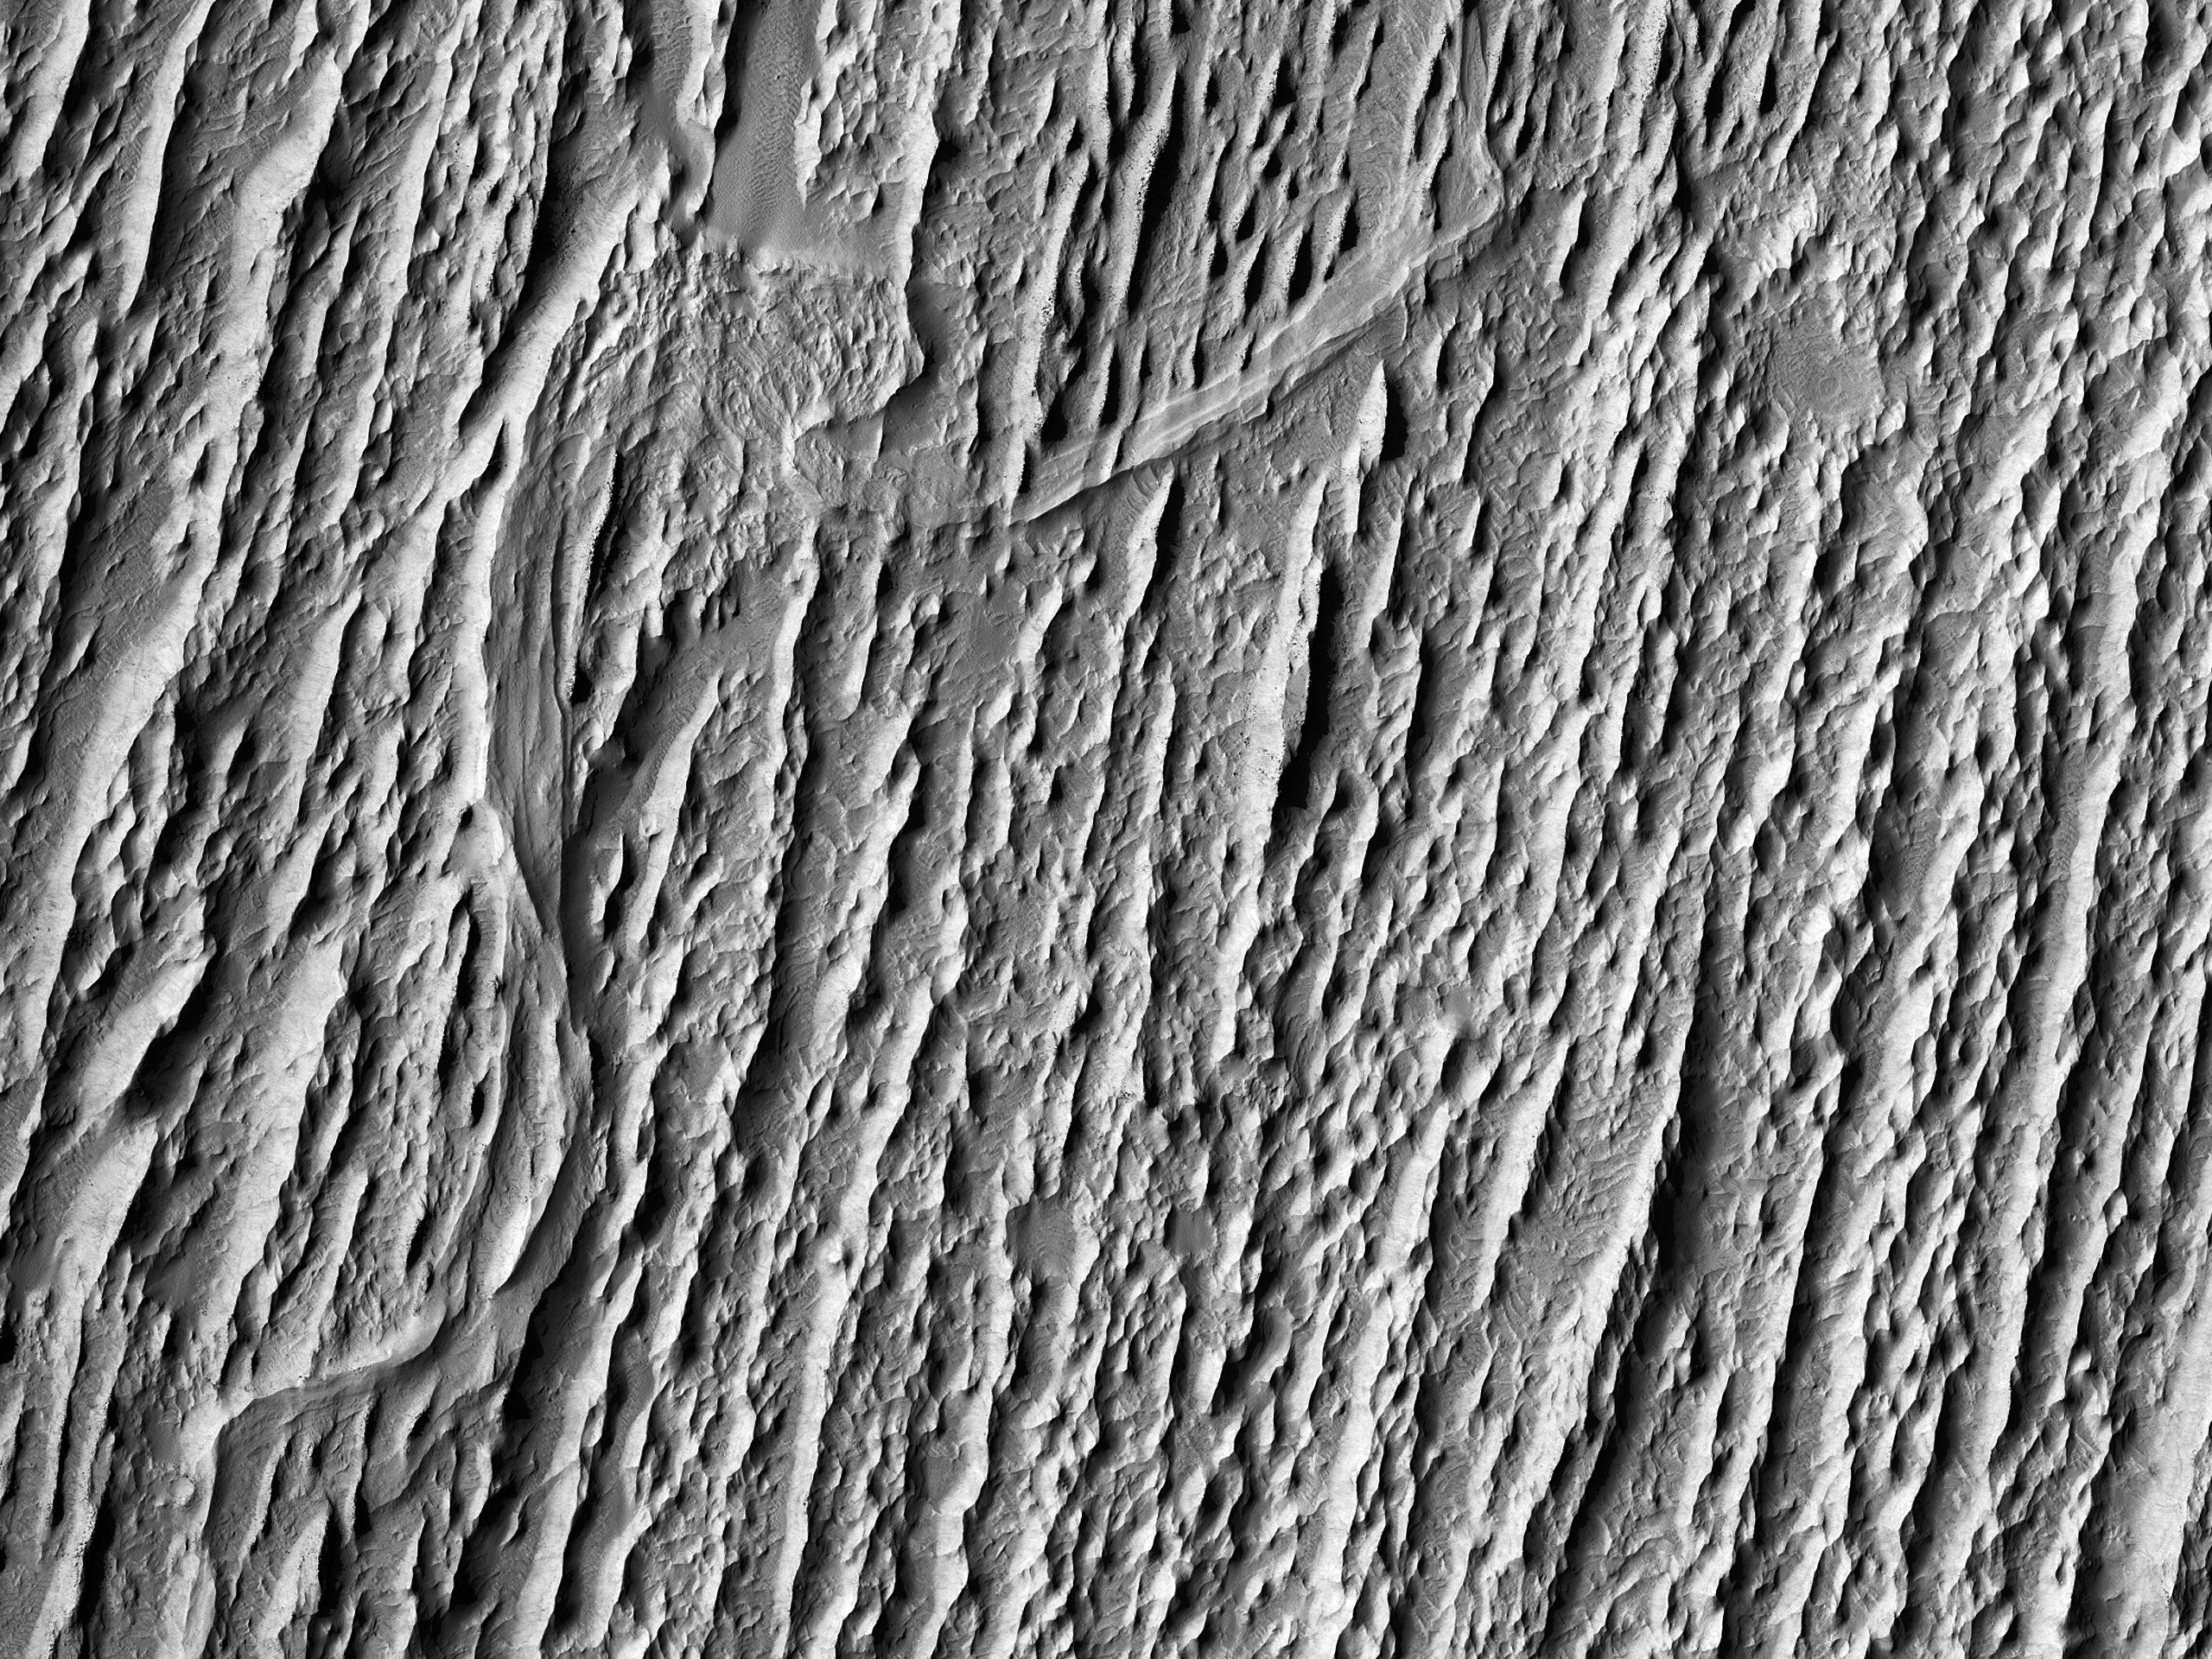 Raised Curvilinear Ridges